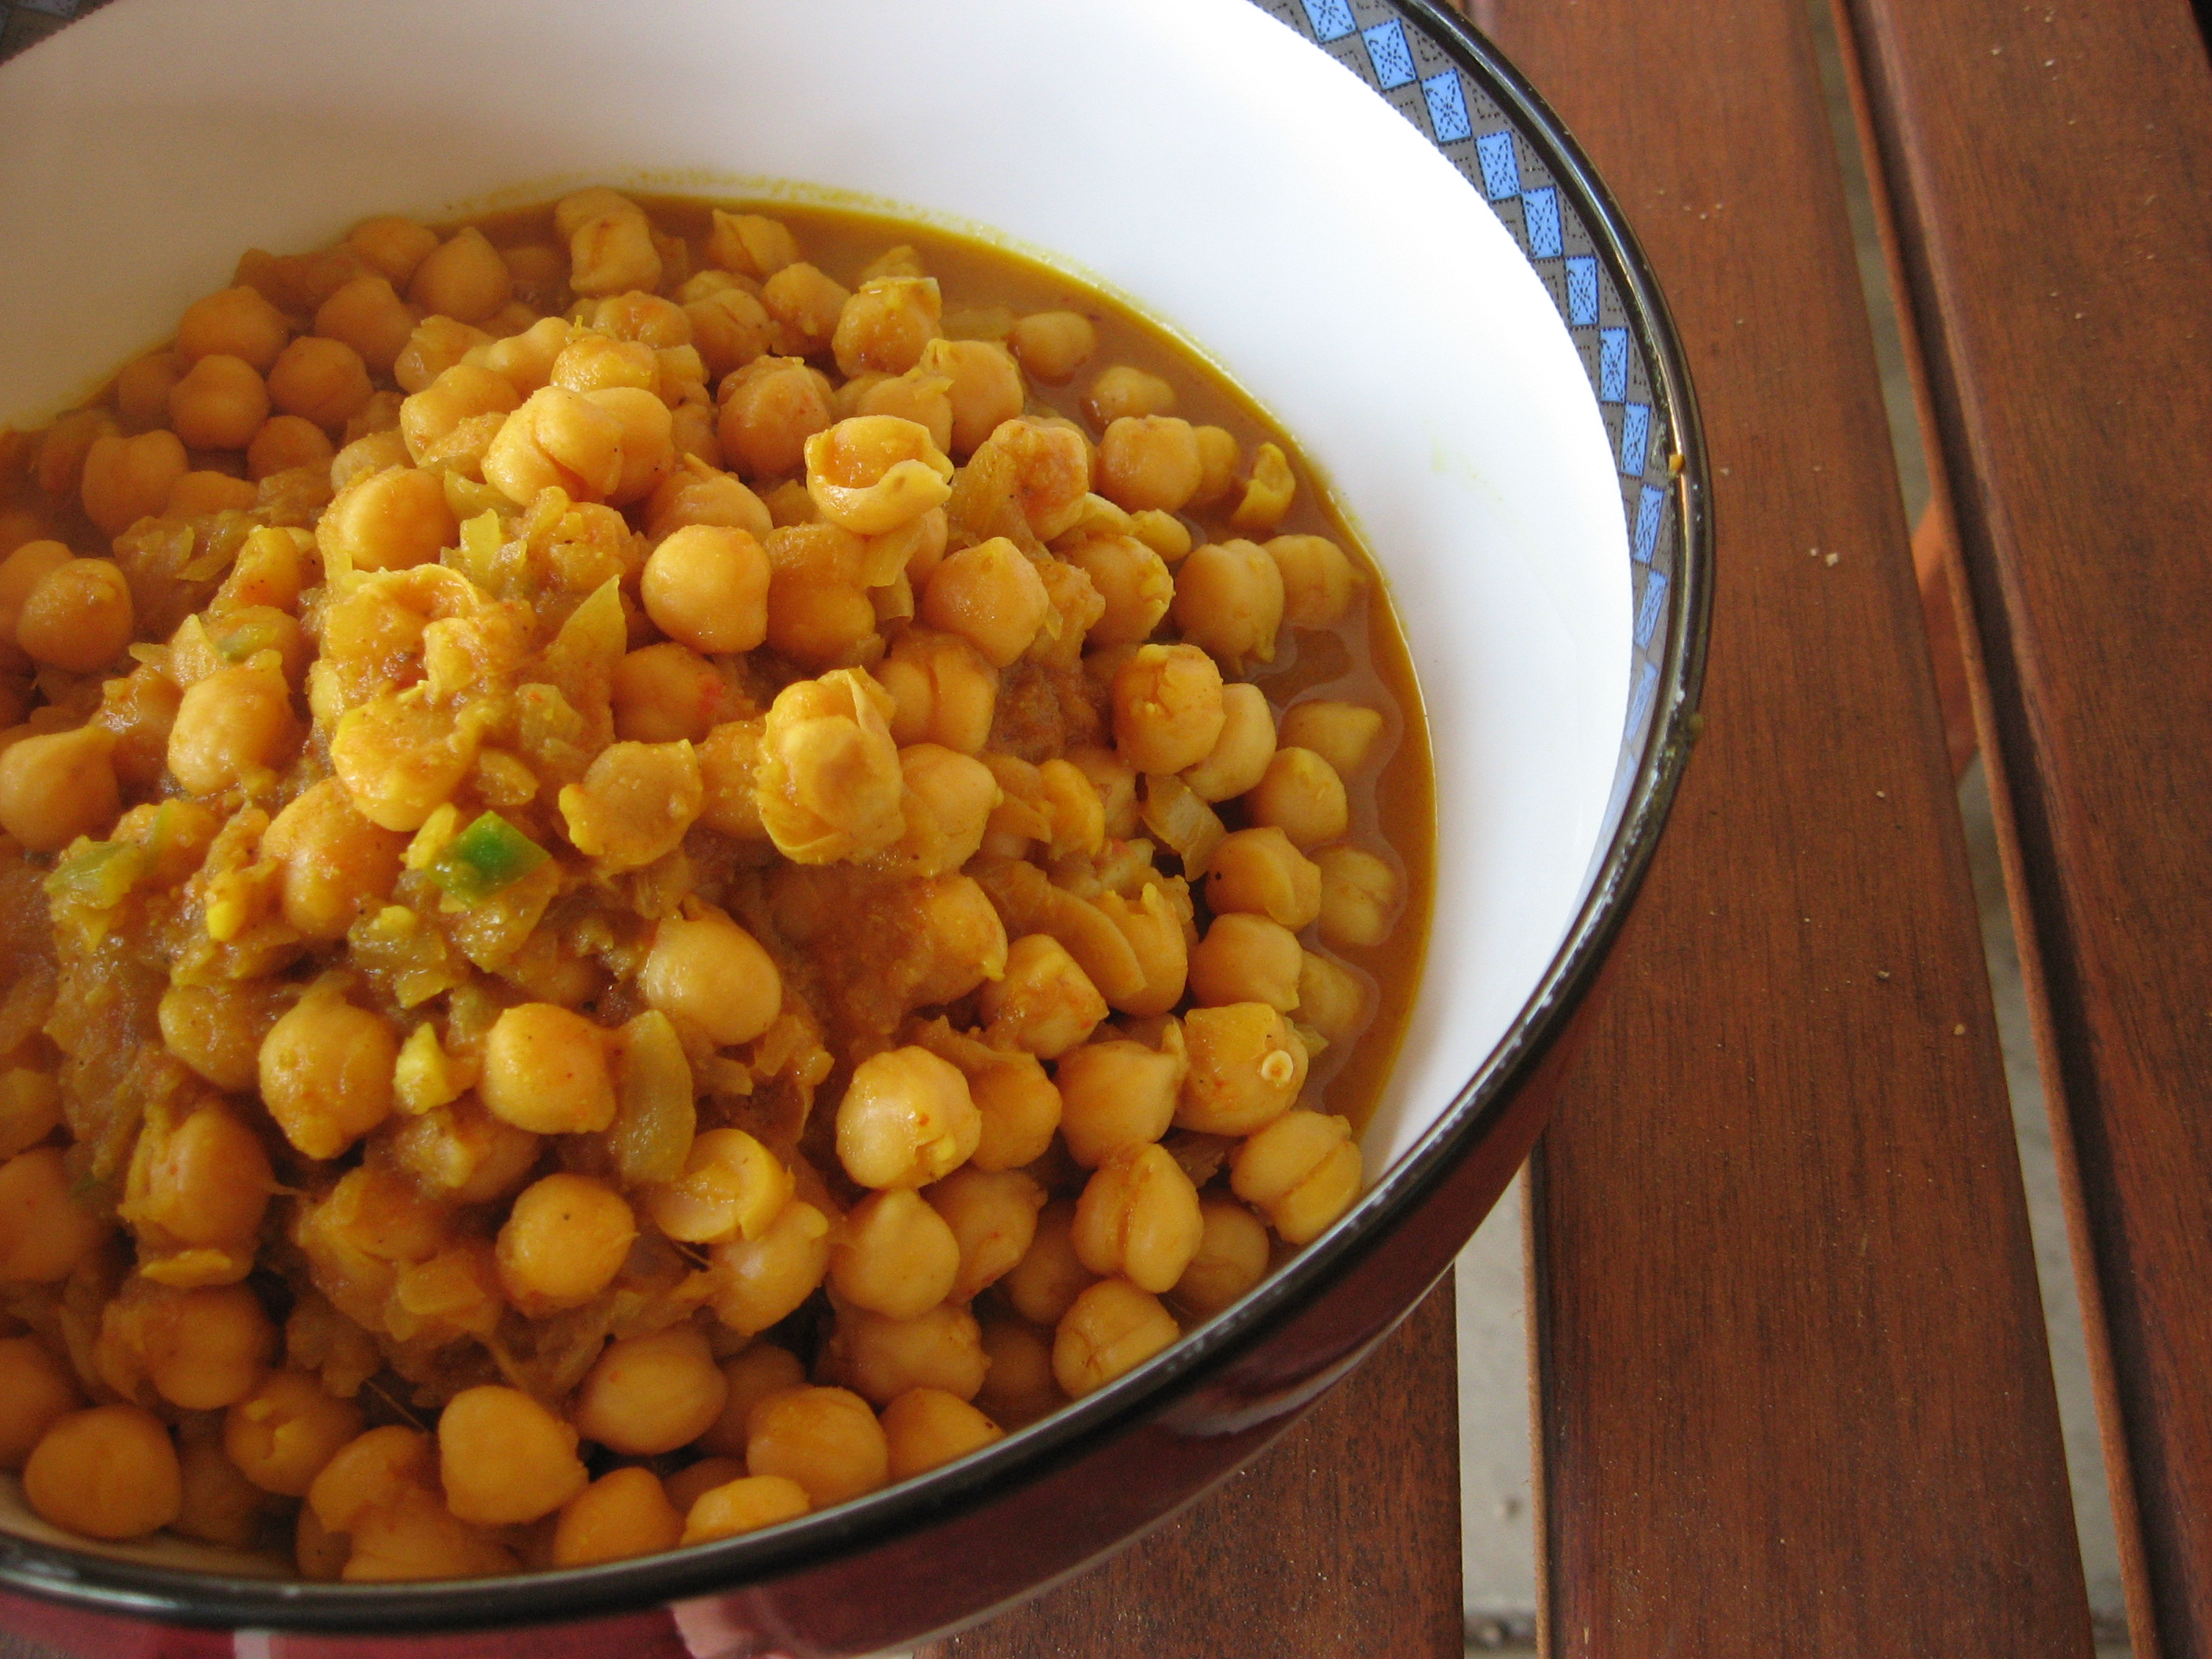 Khatte chhole sour indian chickpeas keito potato i forumfinder Image collections